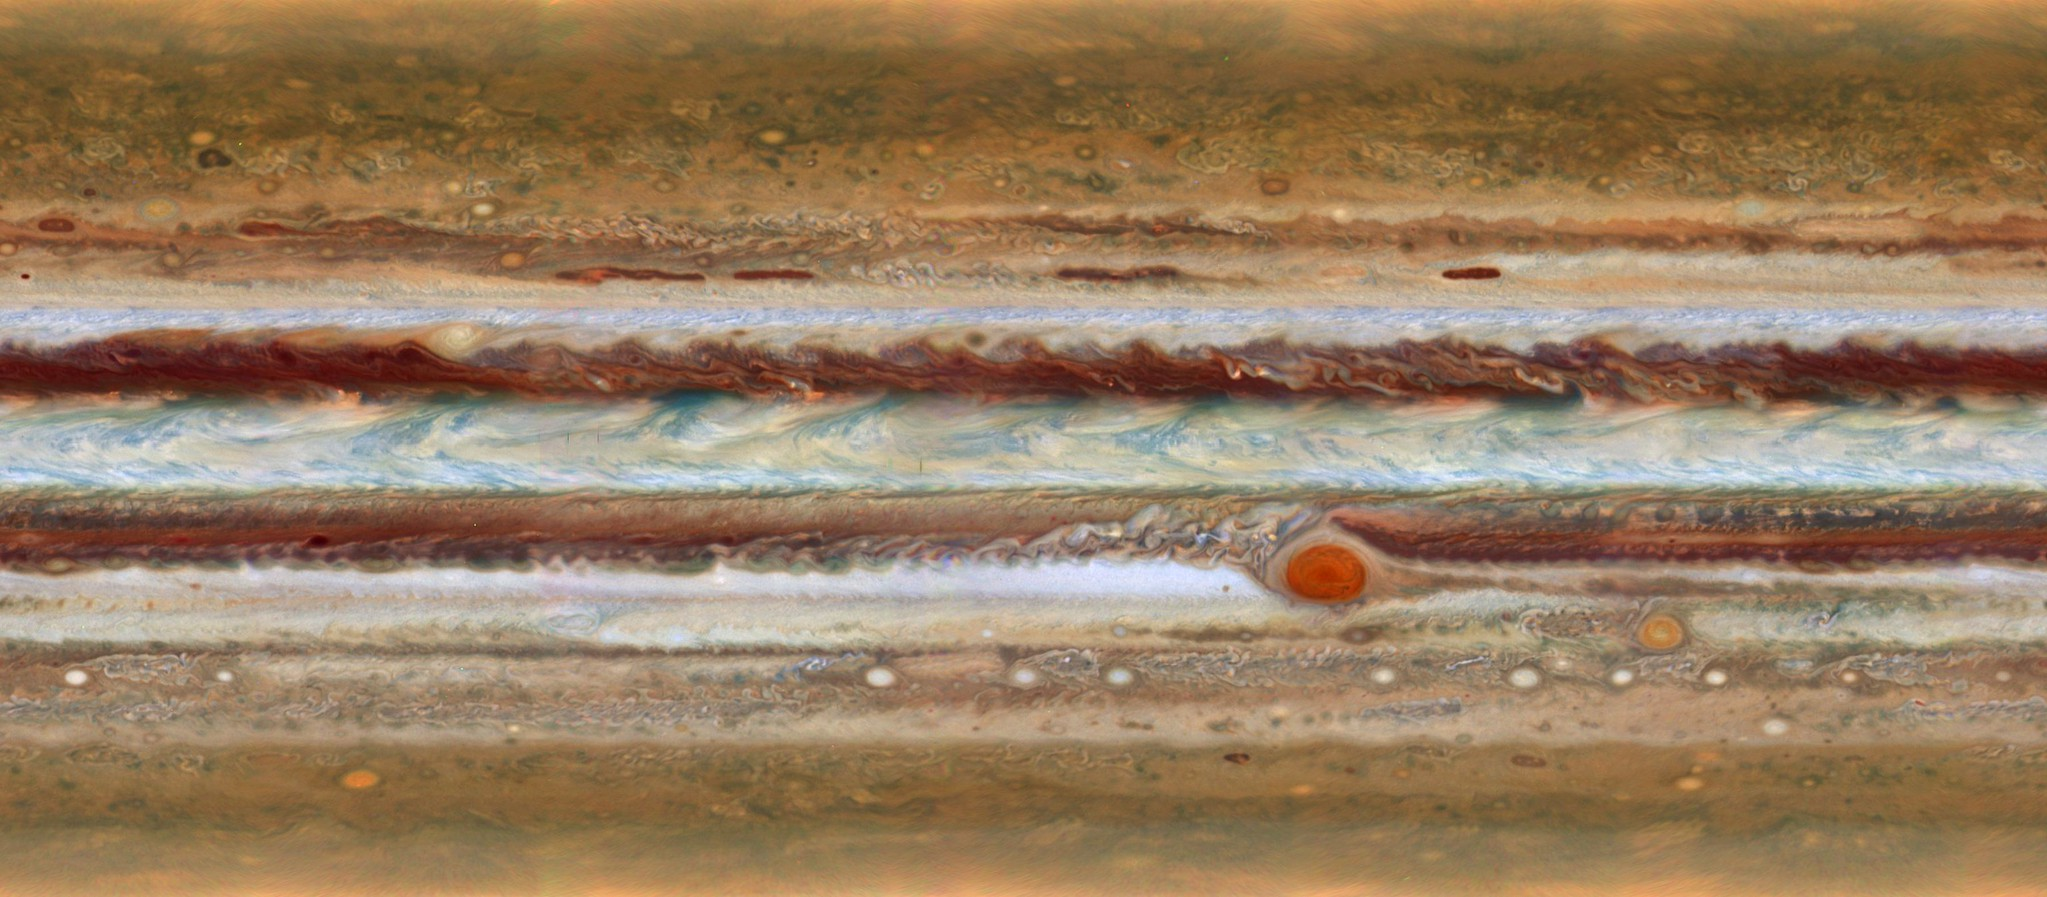 Amazing New Maps of Jupiter: Photography by NASA